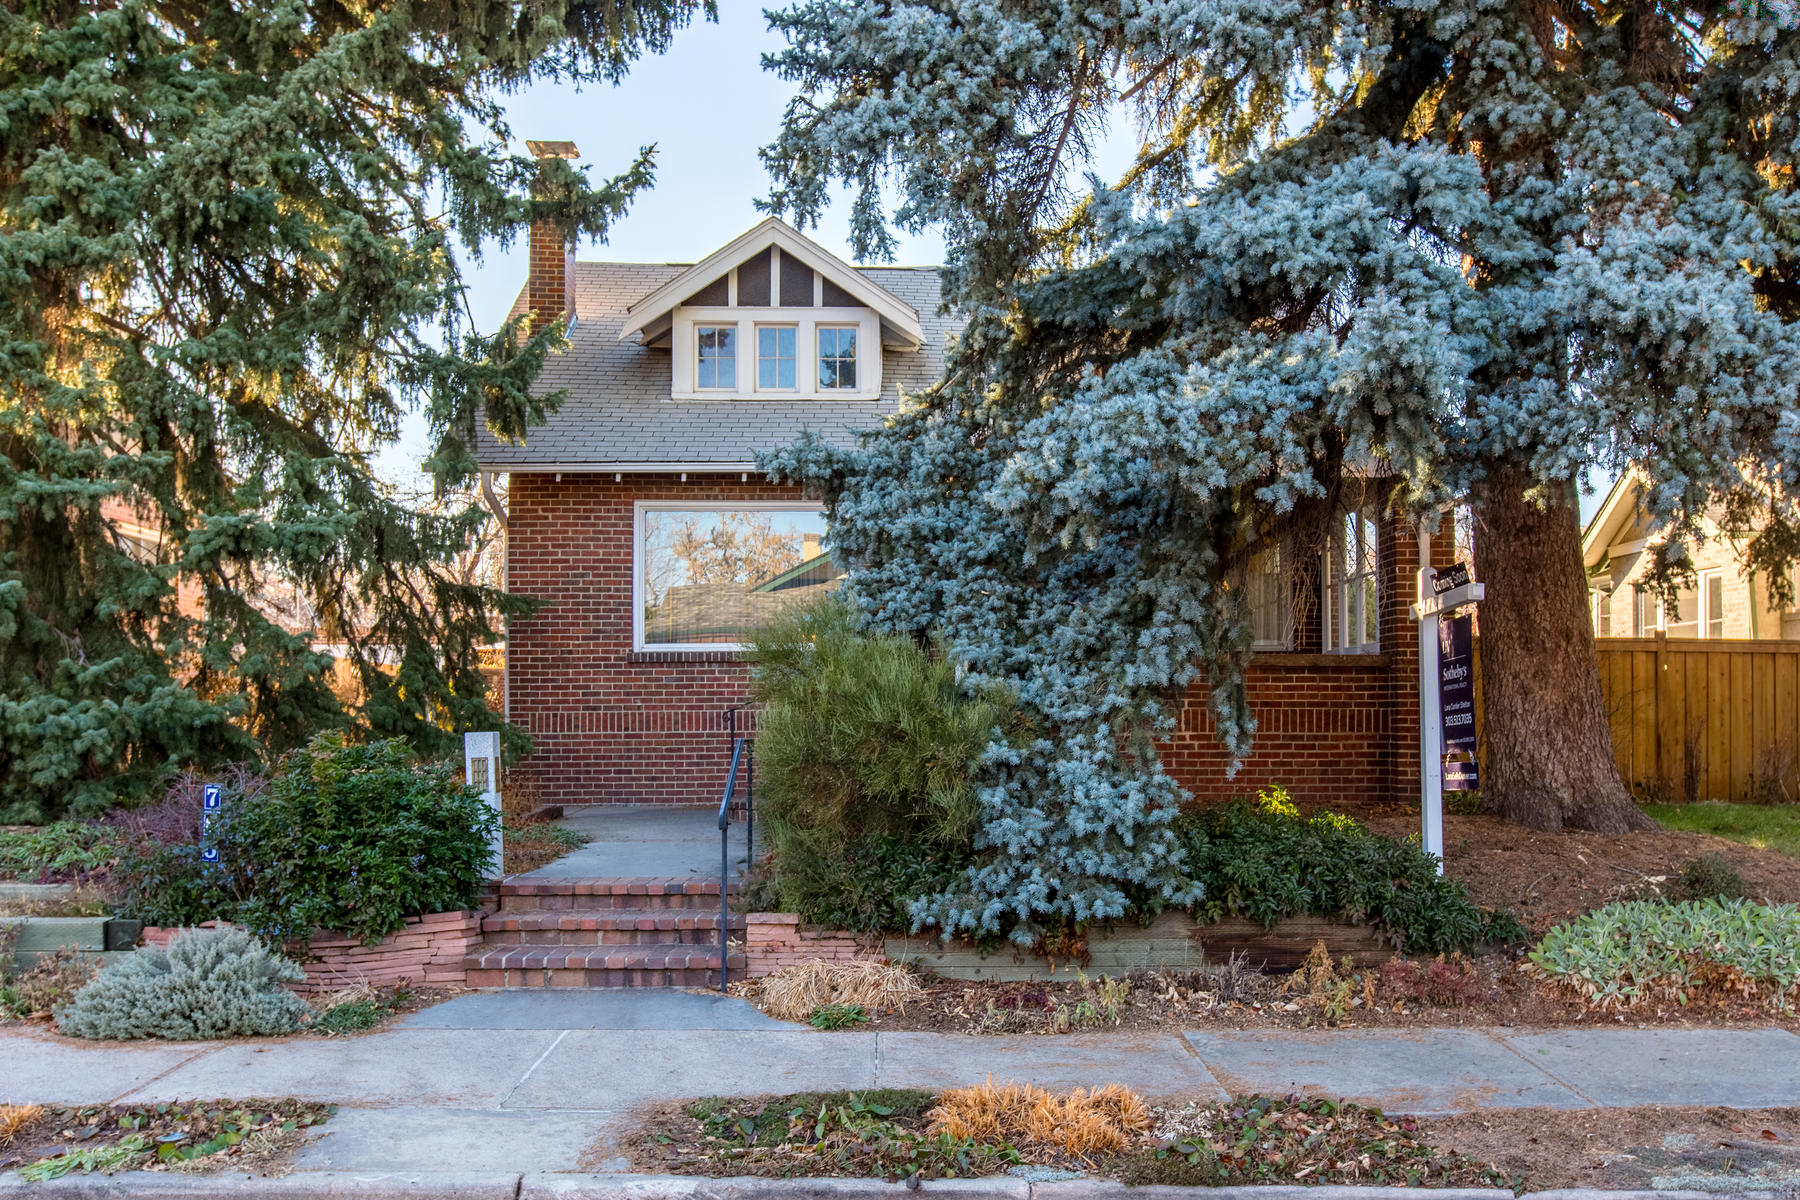 Single Family Home for Active at Charming Congress Park bungalow on a great block steps from historic 7th Avenue 765 Jackson St Denver, Colorado 80206 United States